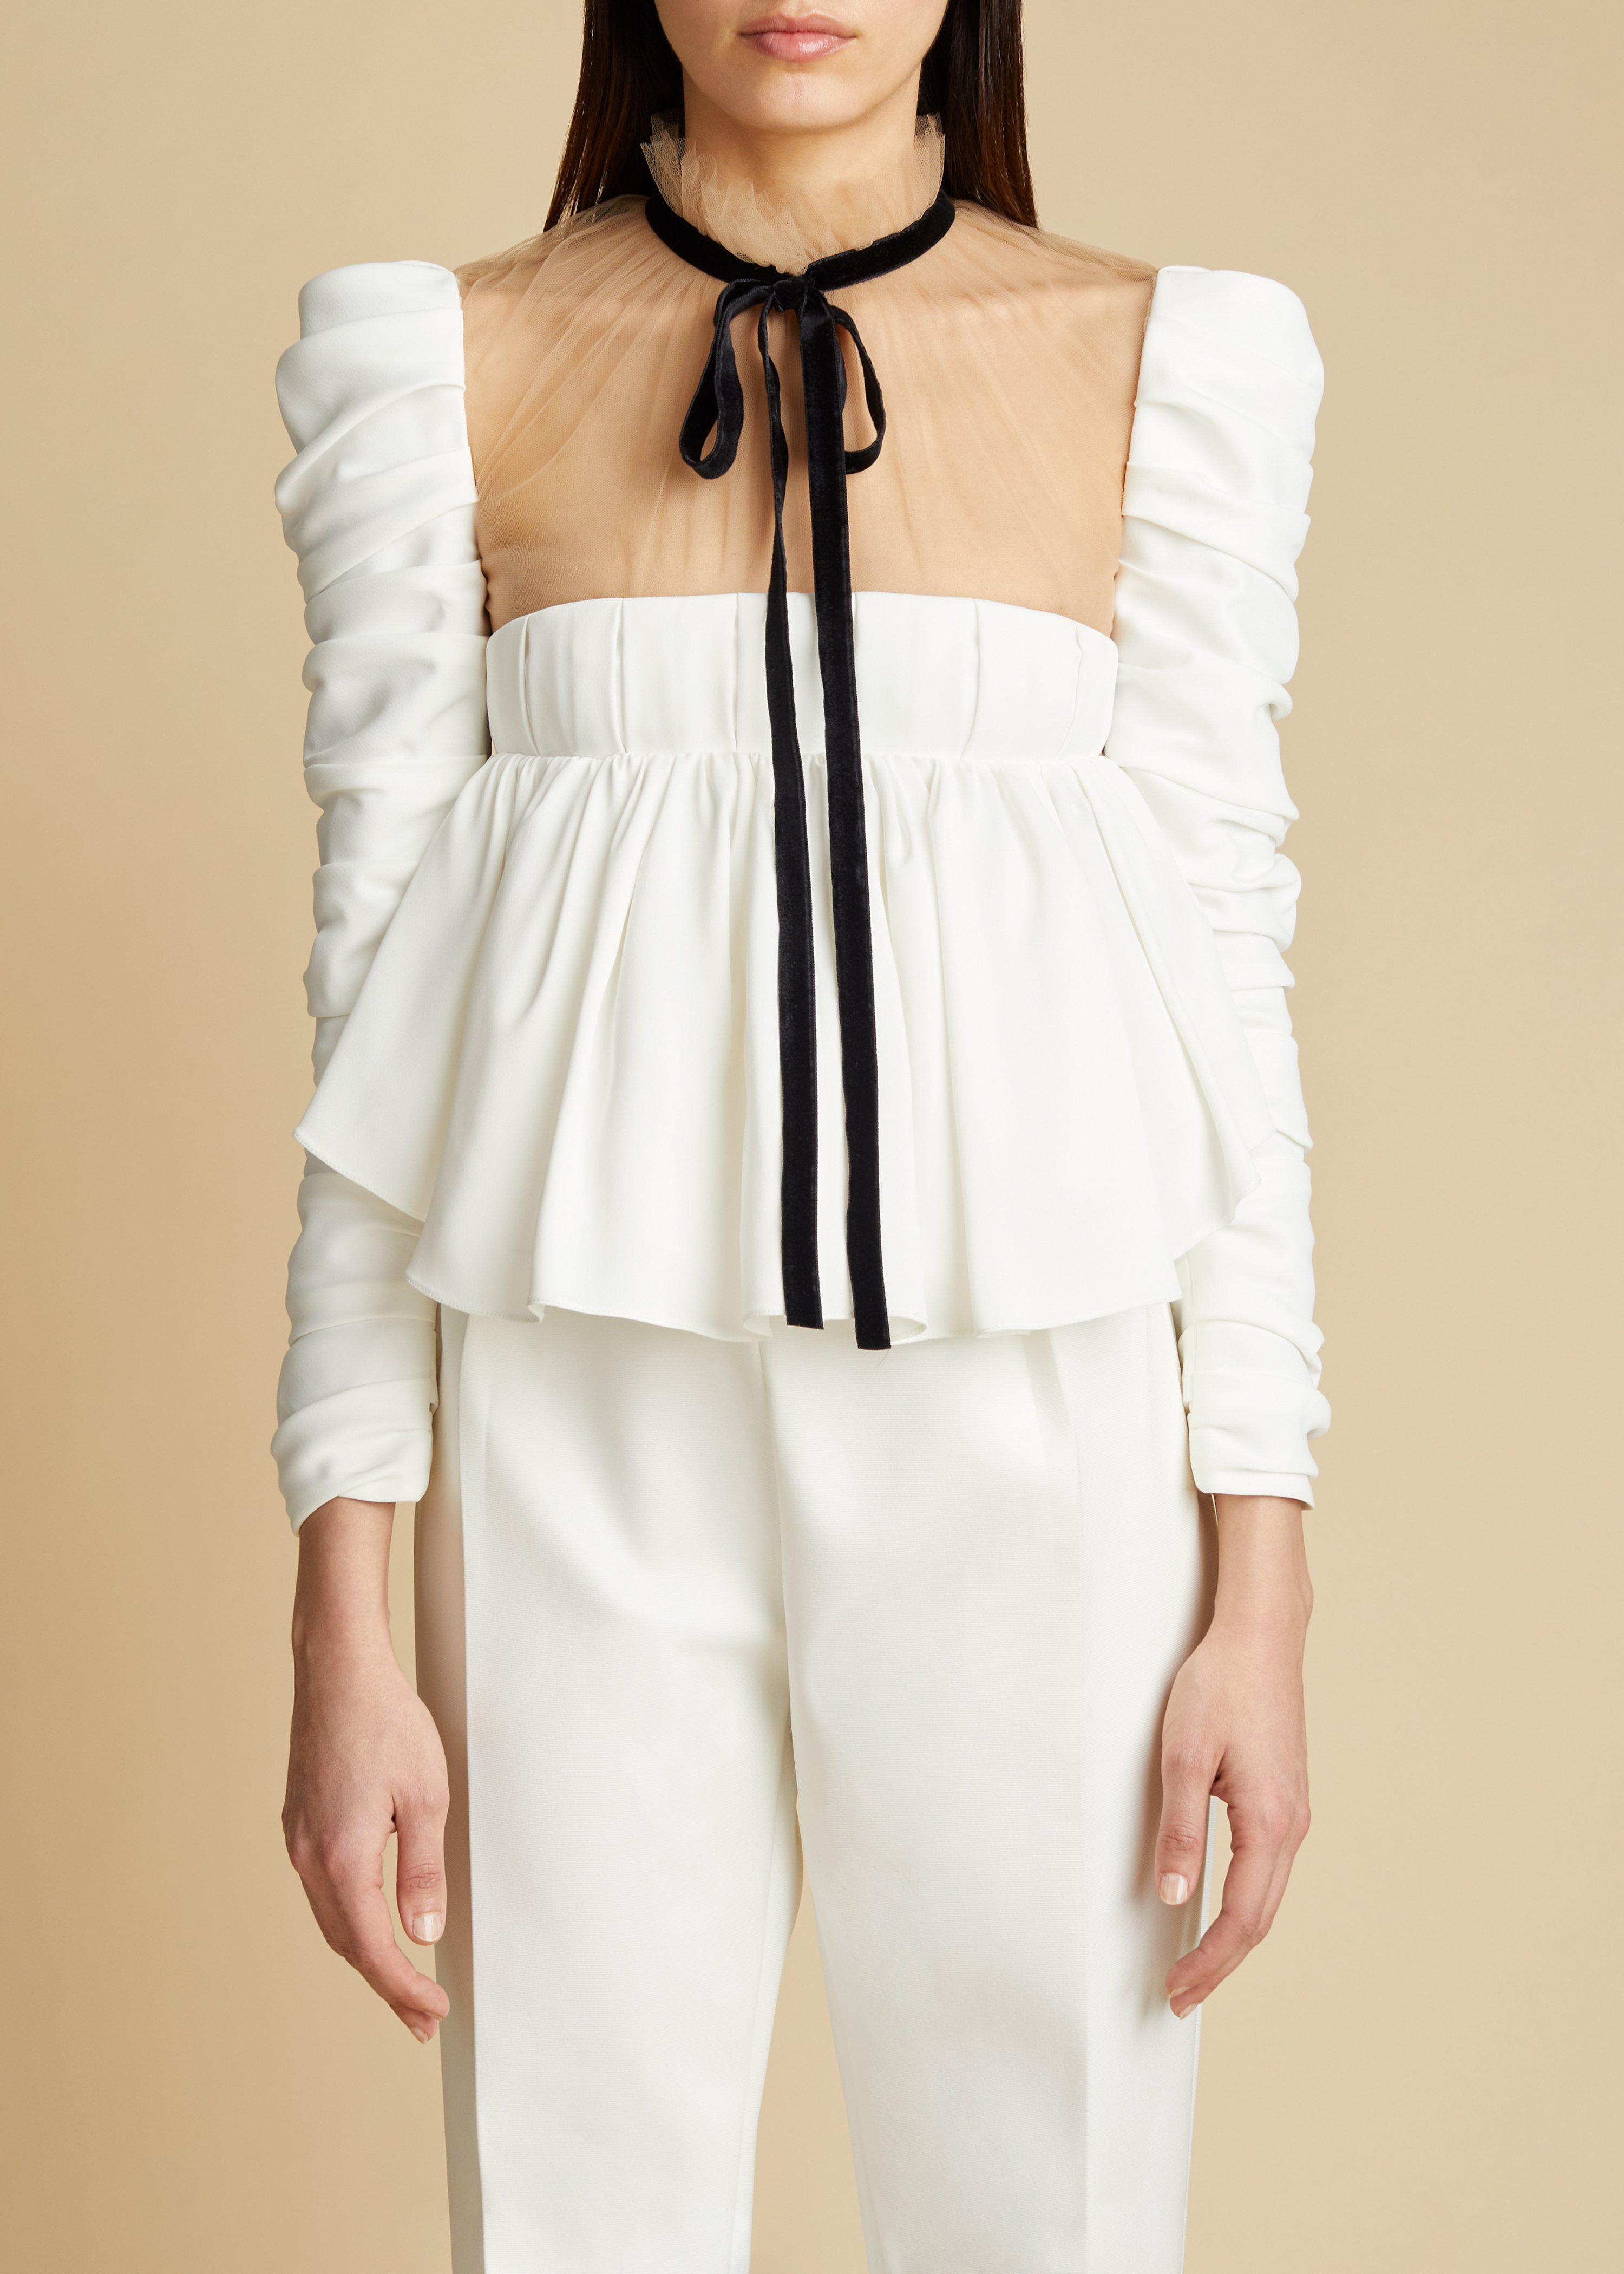 The Fanny Top in Ivory